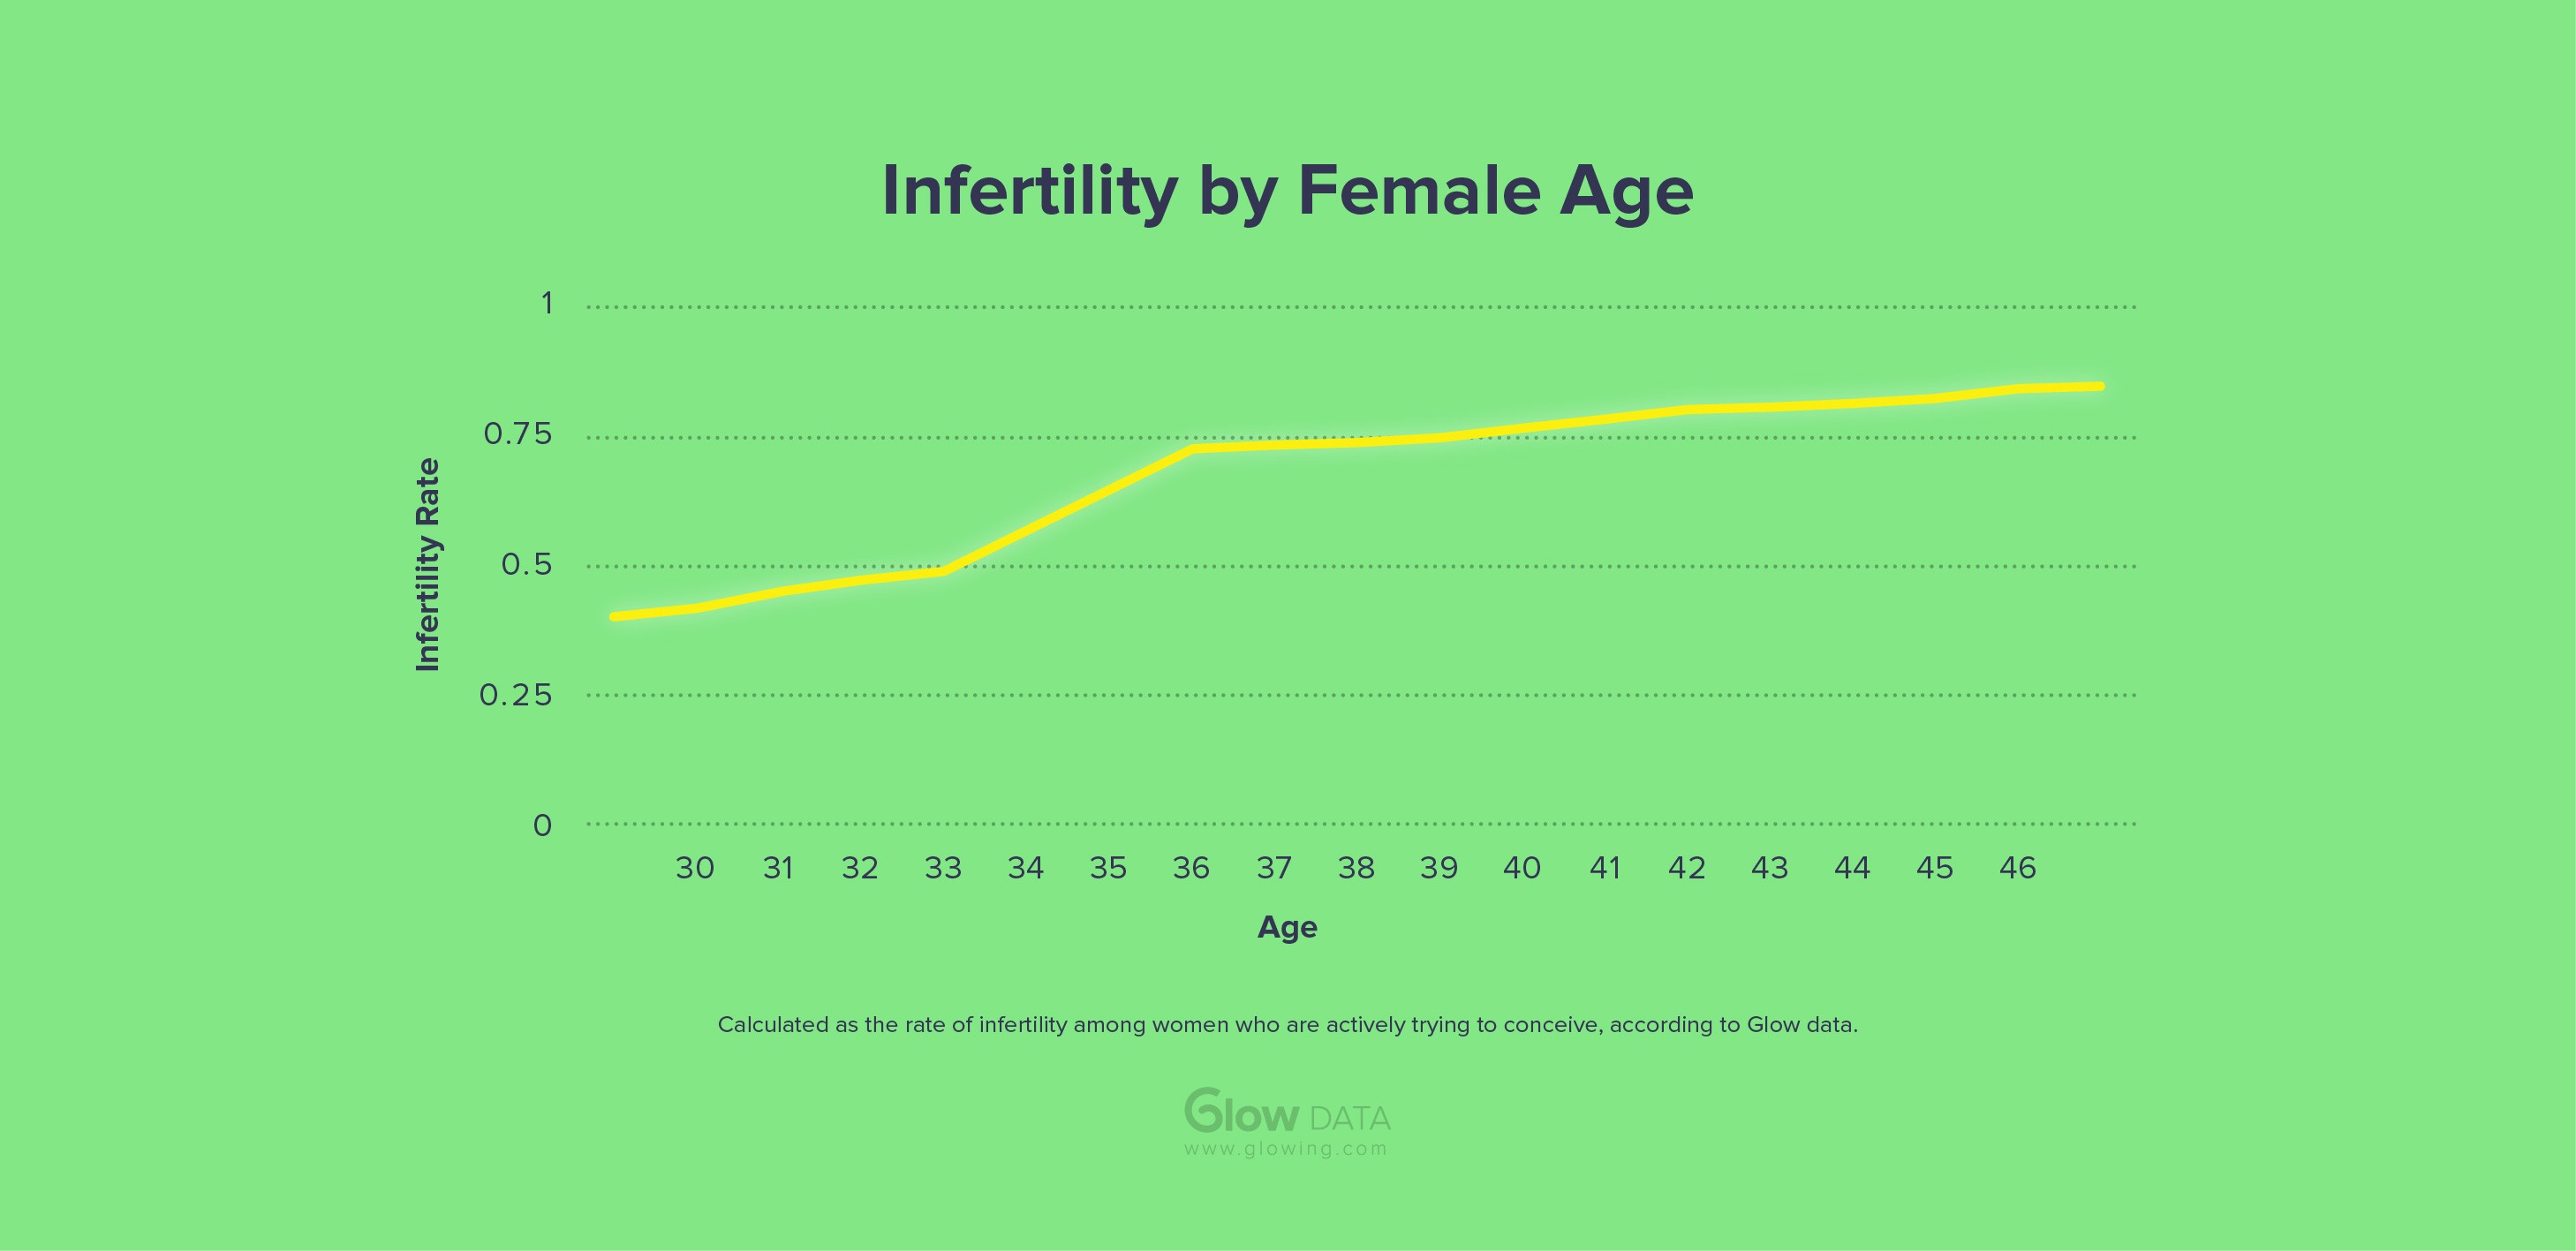 5 Things Data Can Teach You About Infertility - Glow, Inc